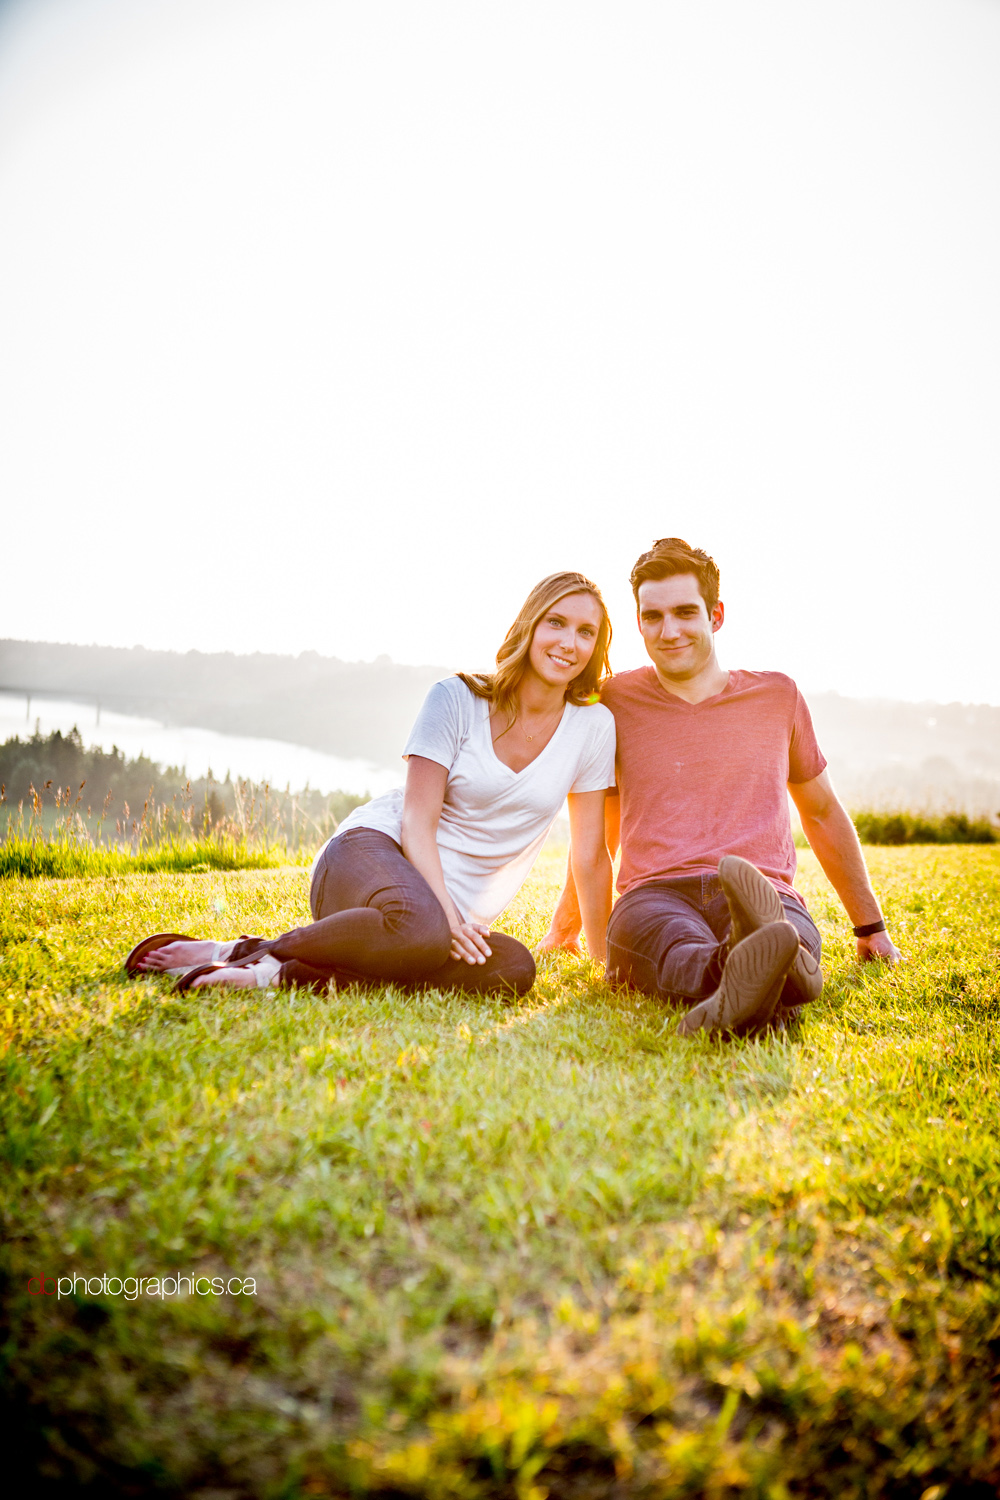 Ben & Melissa - Engagement Session - 20140713 - 0070.jpg